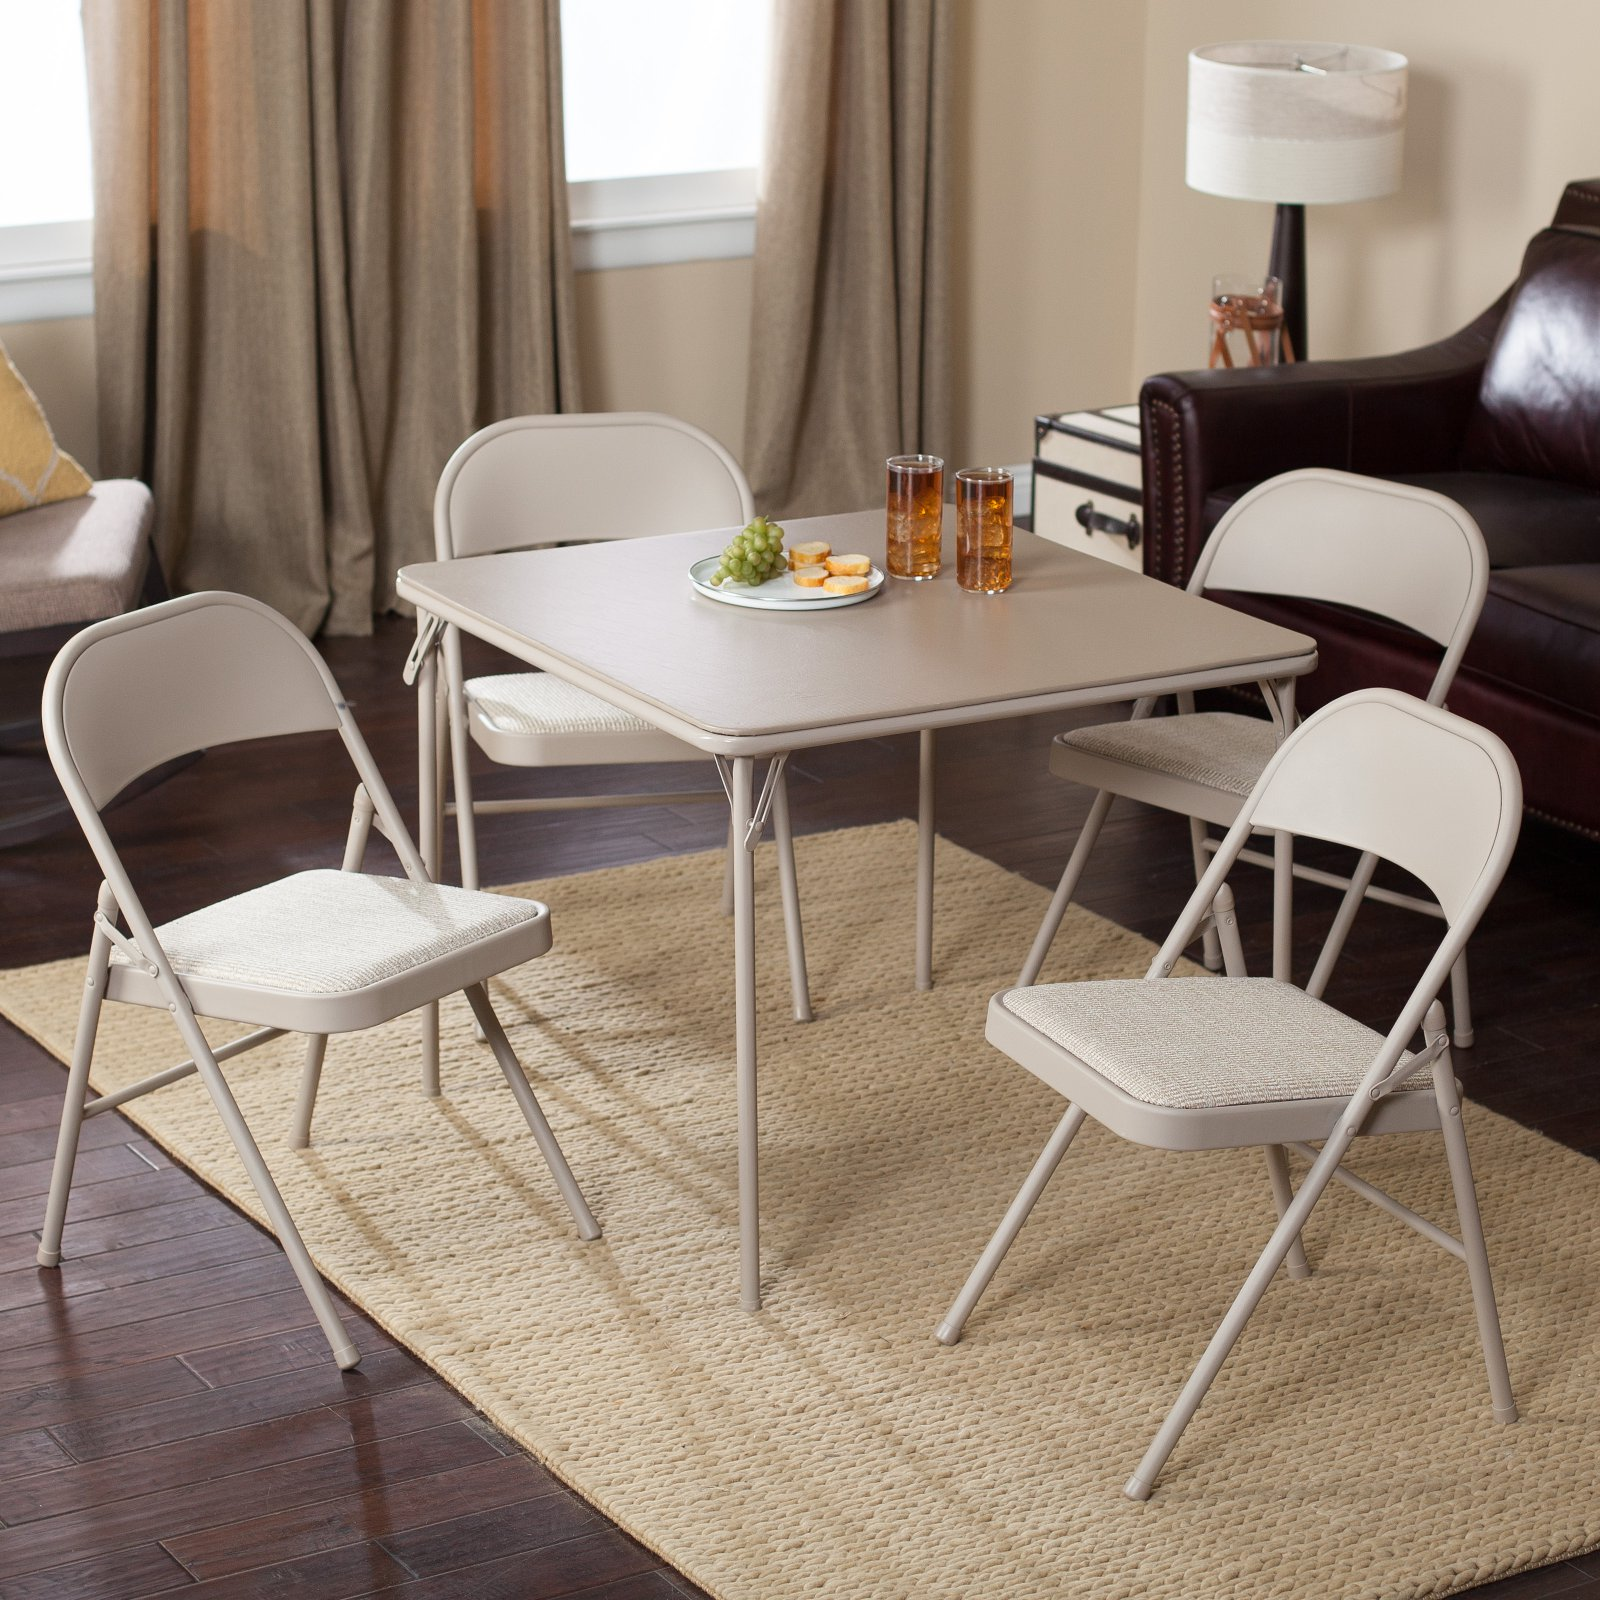 Meco Sudden Comfort Deluxe Single Padded Seat and Back-5 Piece Card Table Set Buff Lace by Meco Corp